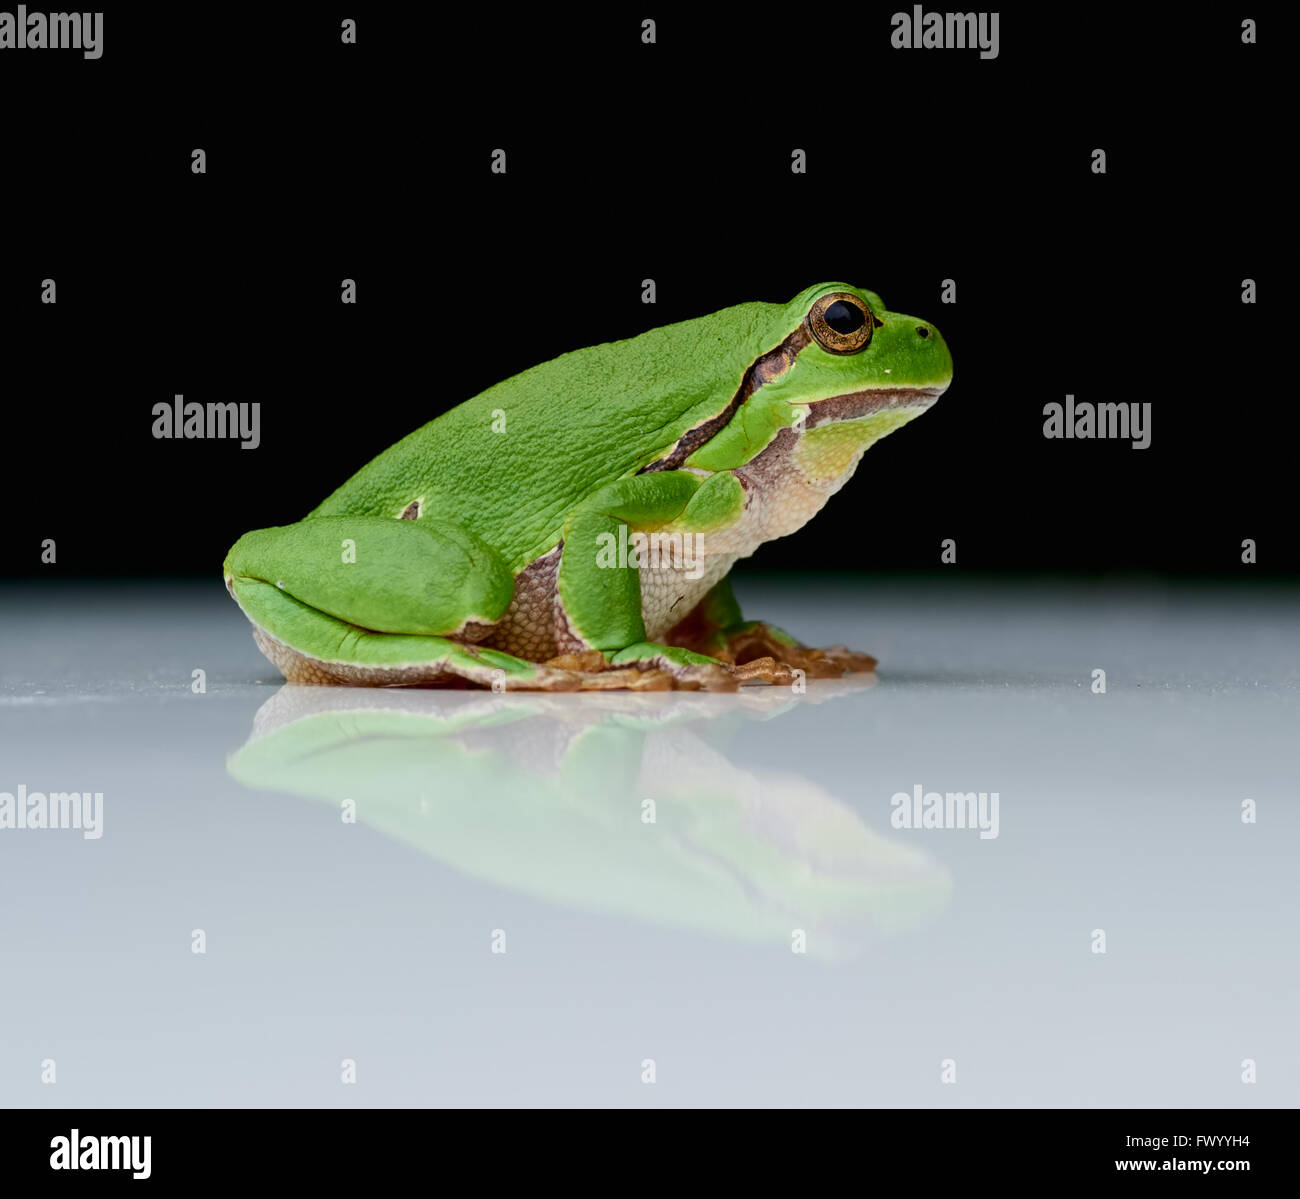 Close up of european tree frog (Hyla arborea) sitting on a a reflecting white plate with black background Stock Photo